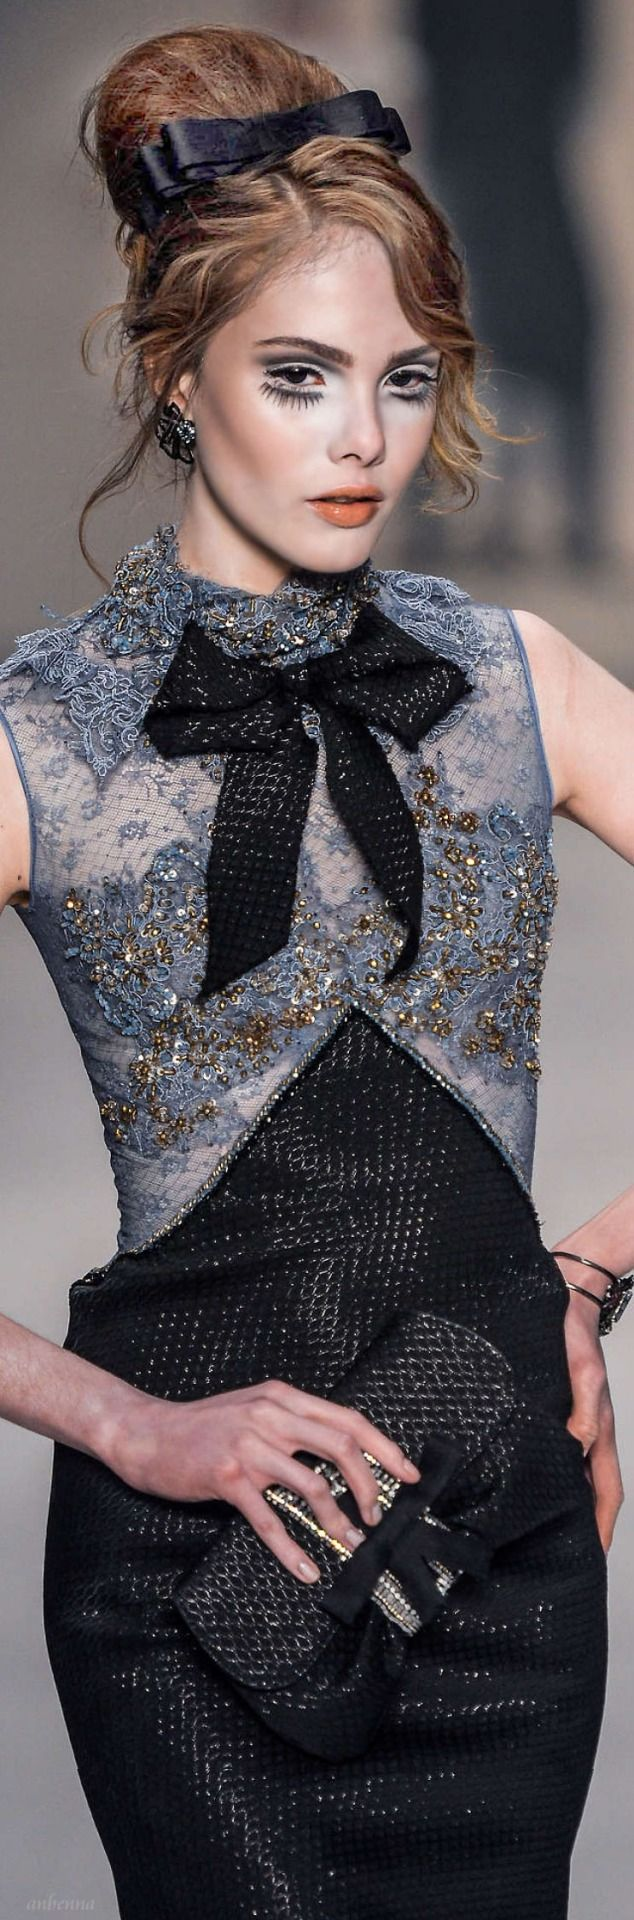 234 Best Images On Pinterest Horse Show Clothes Riding Minimal Evia Pleated Dress Navy Check L Chanel Grey Embroidered Crystal Sheer Bodice W Black Tweed Skirt Replace The Bow With A String Of Pearls